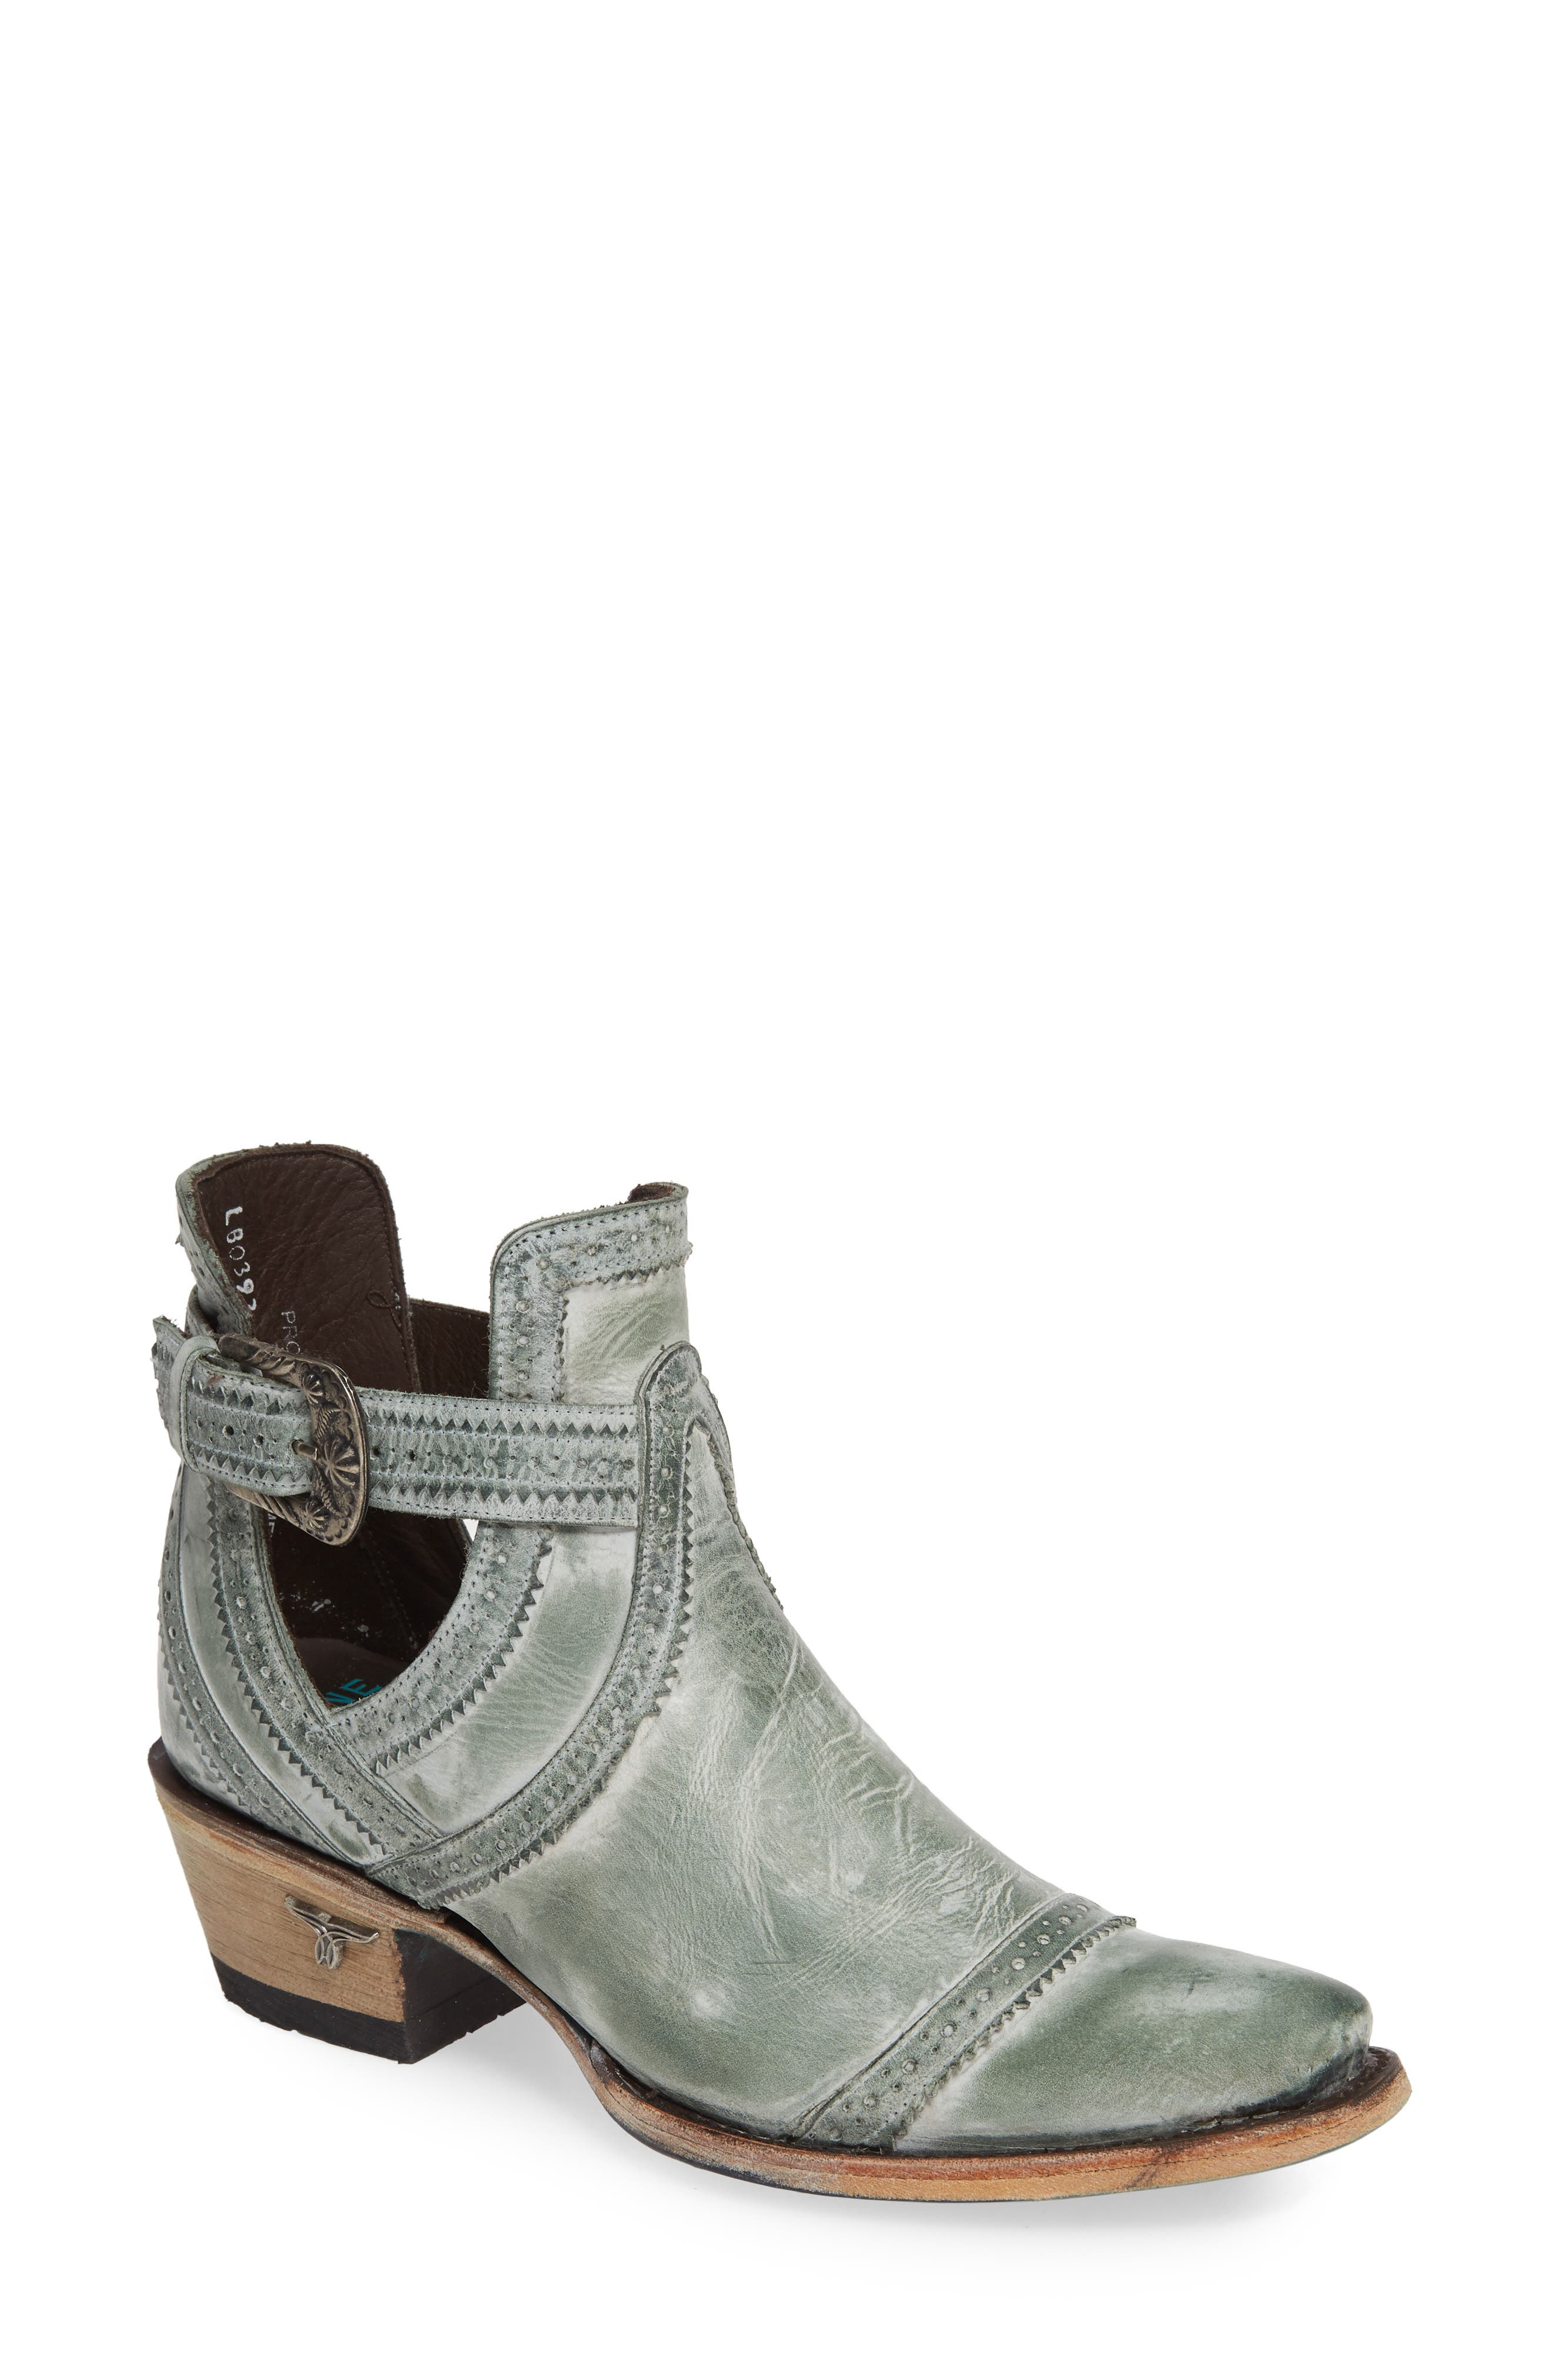 Handcrafted by skilled artisans in Leon, Mexico, this beautiful leather boot features eye-catching stitch detailing and a Western buckle at the ankle strap. Style Name: Lane Boots Cahoots Bootie (Women). Style Number: 5727886. Available in stores.